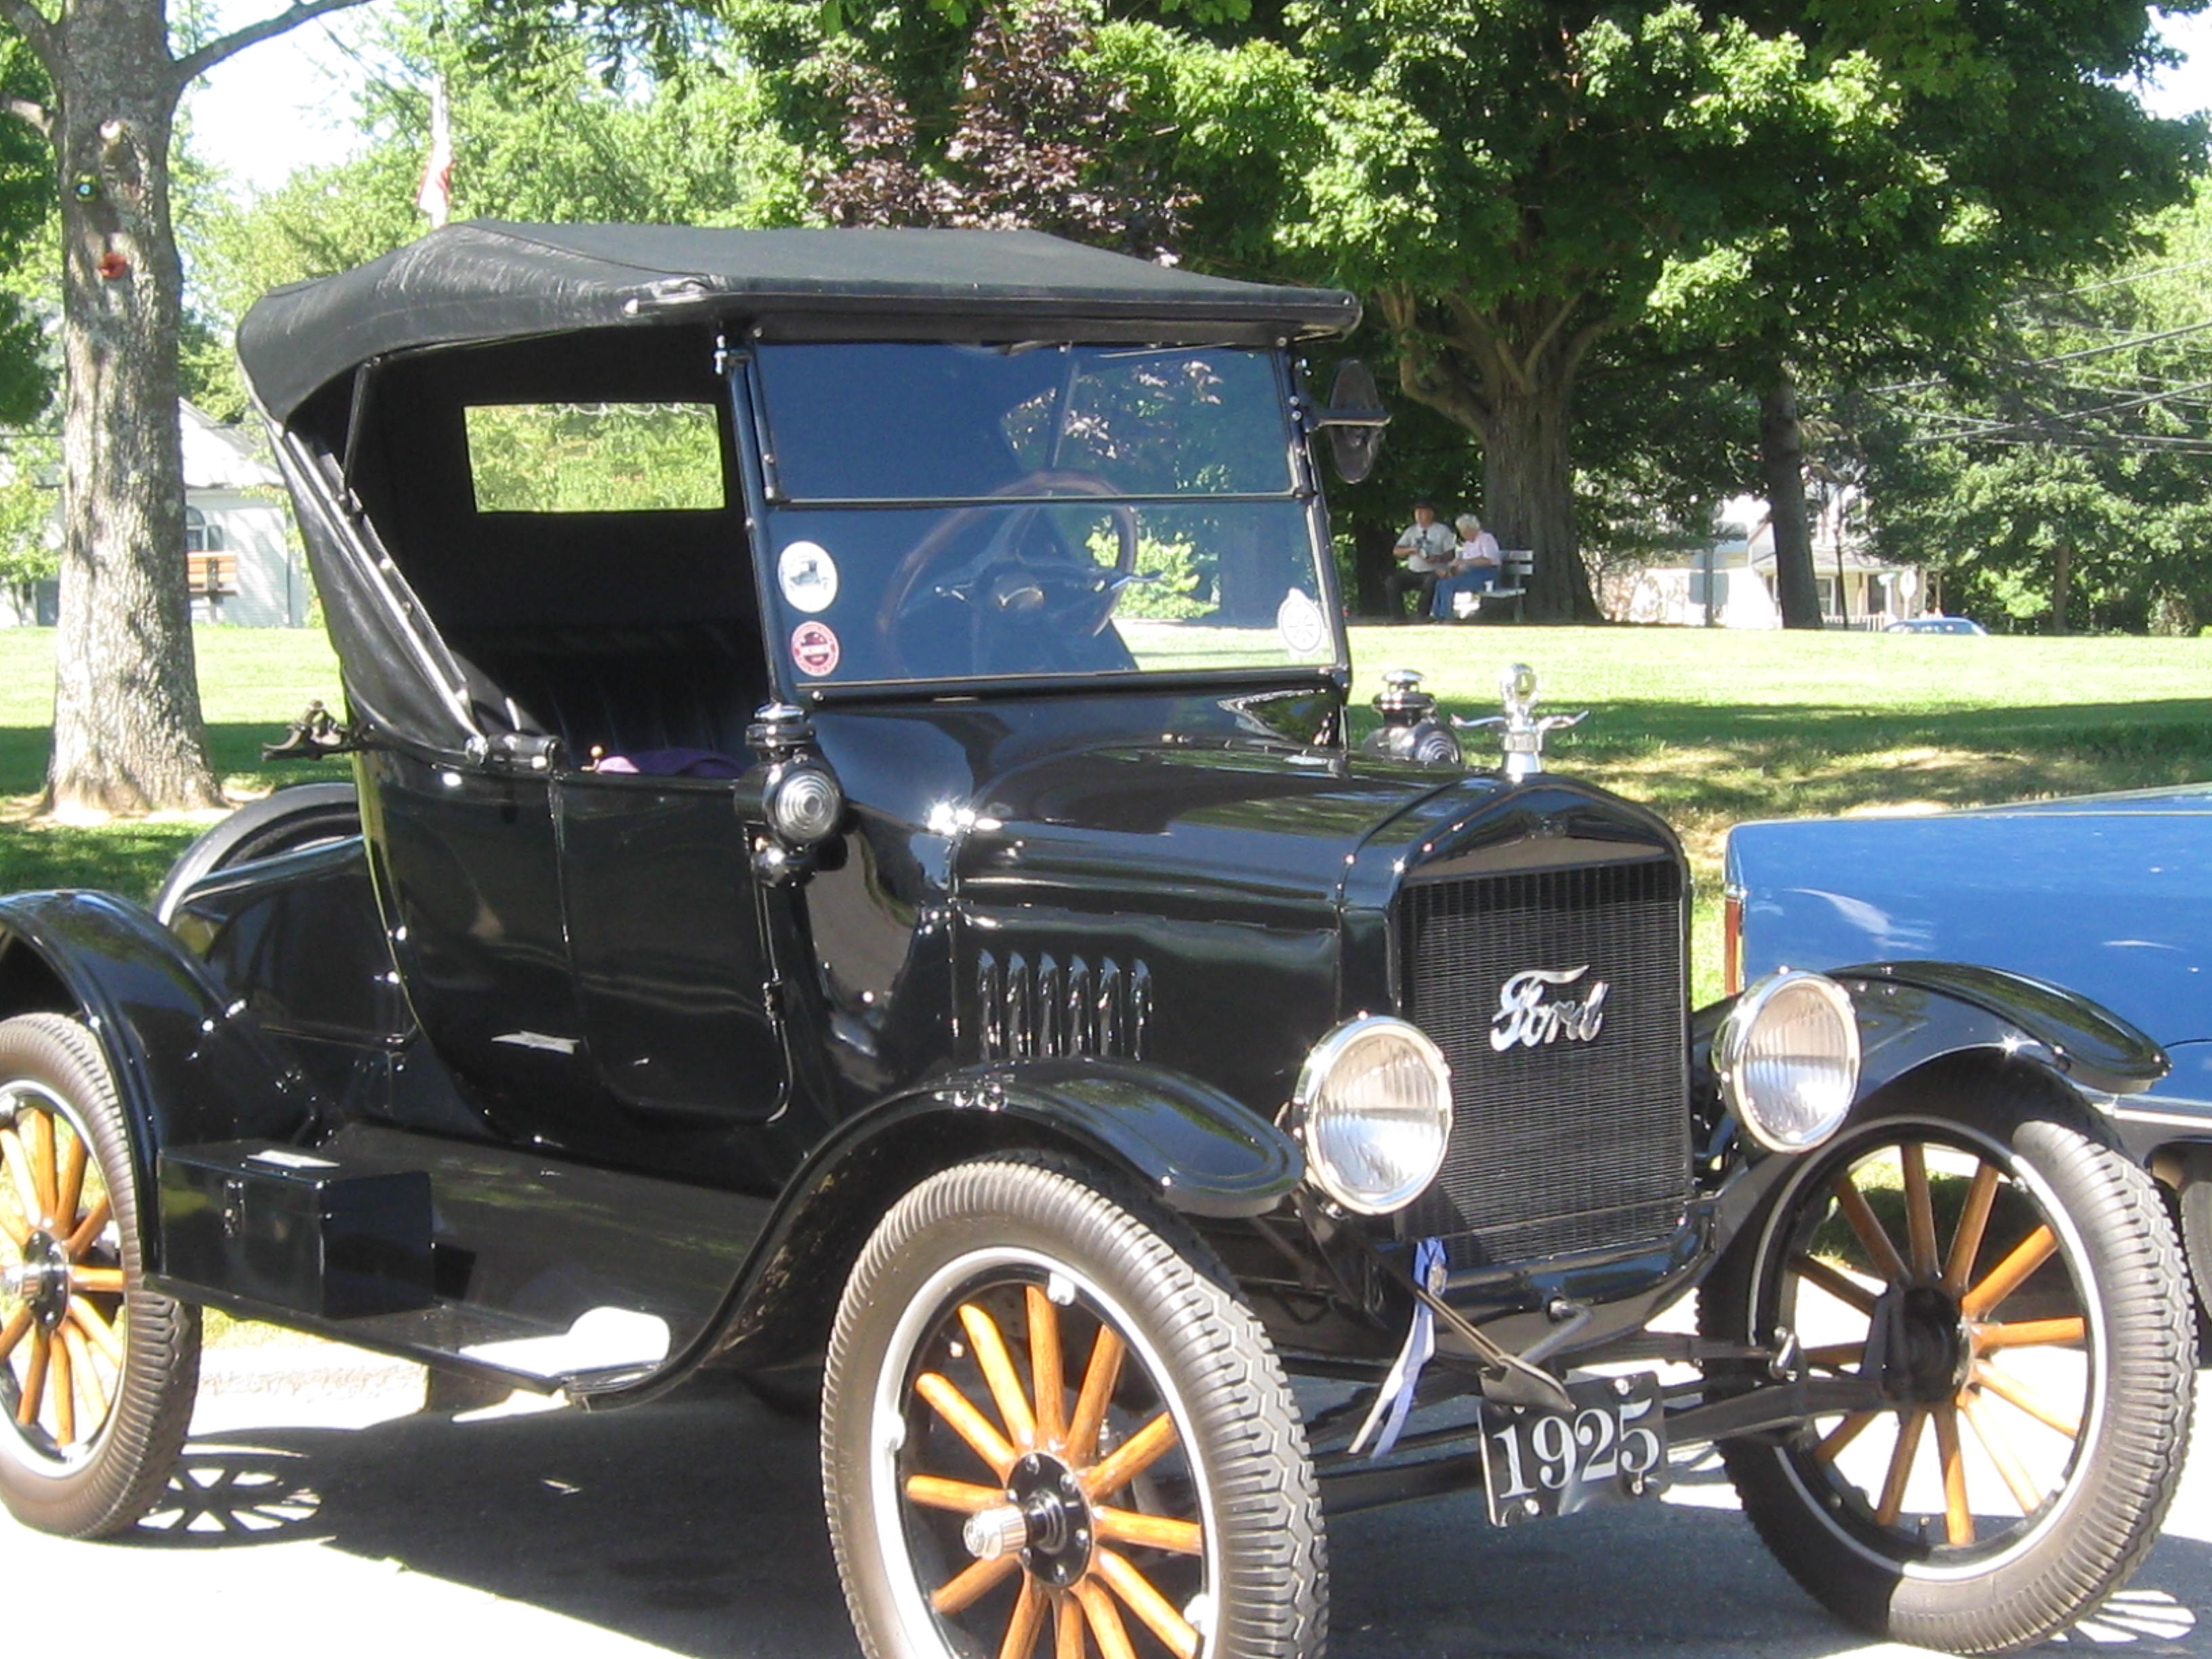 St Annual Antique Auto Show By Heart Of Pittsfield Town Of - Antique car show